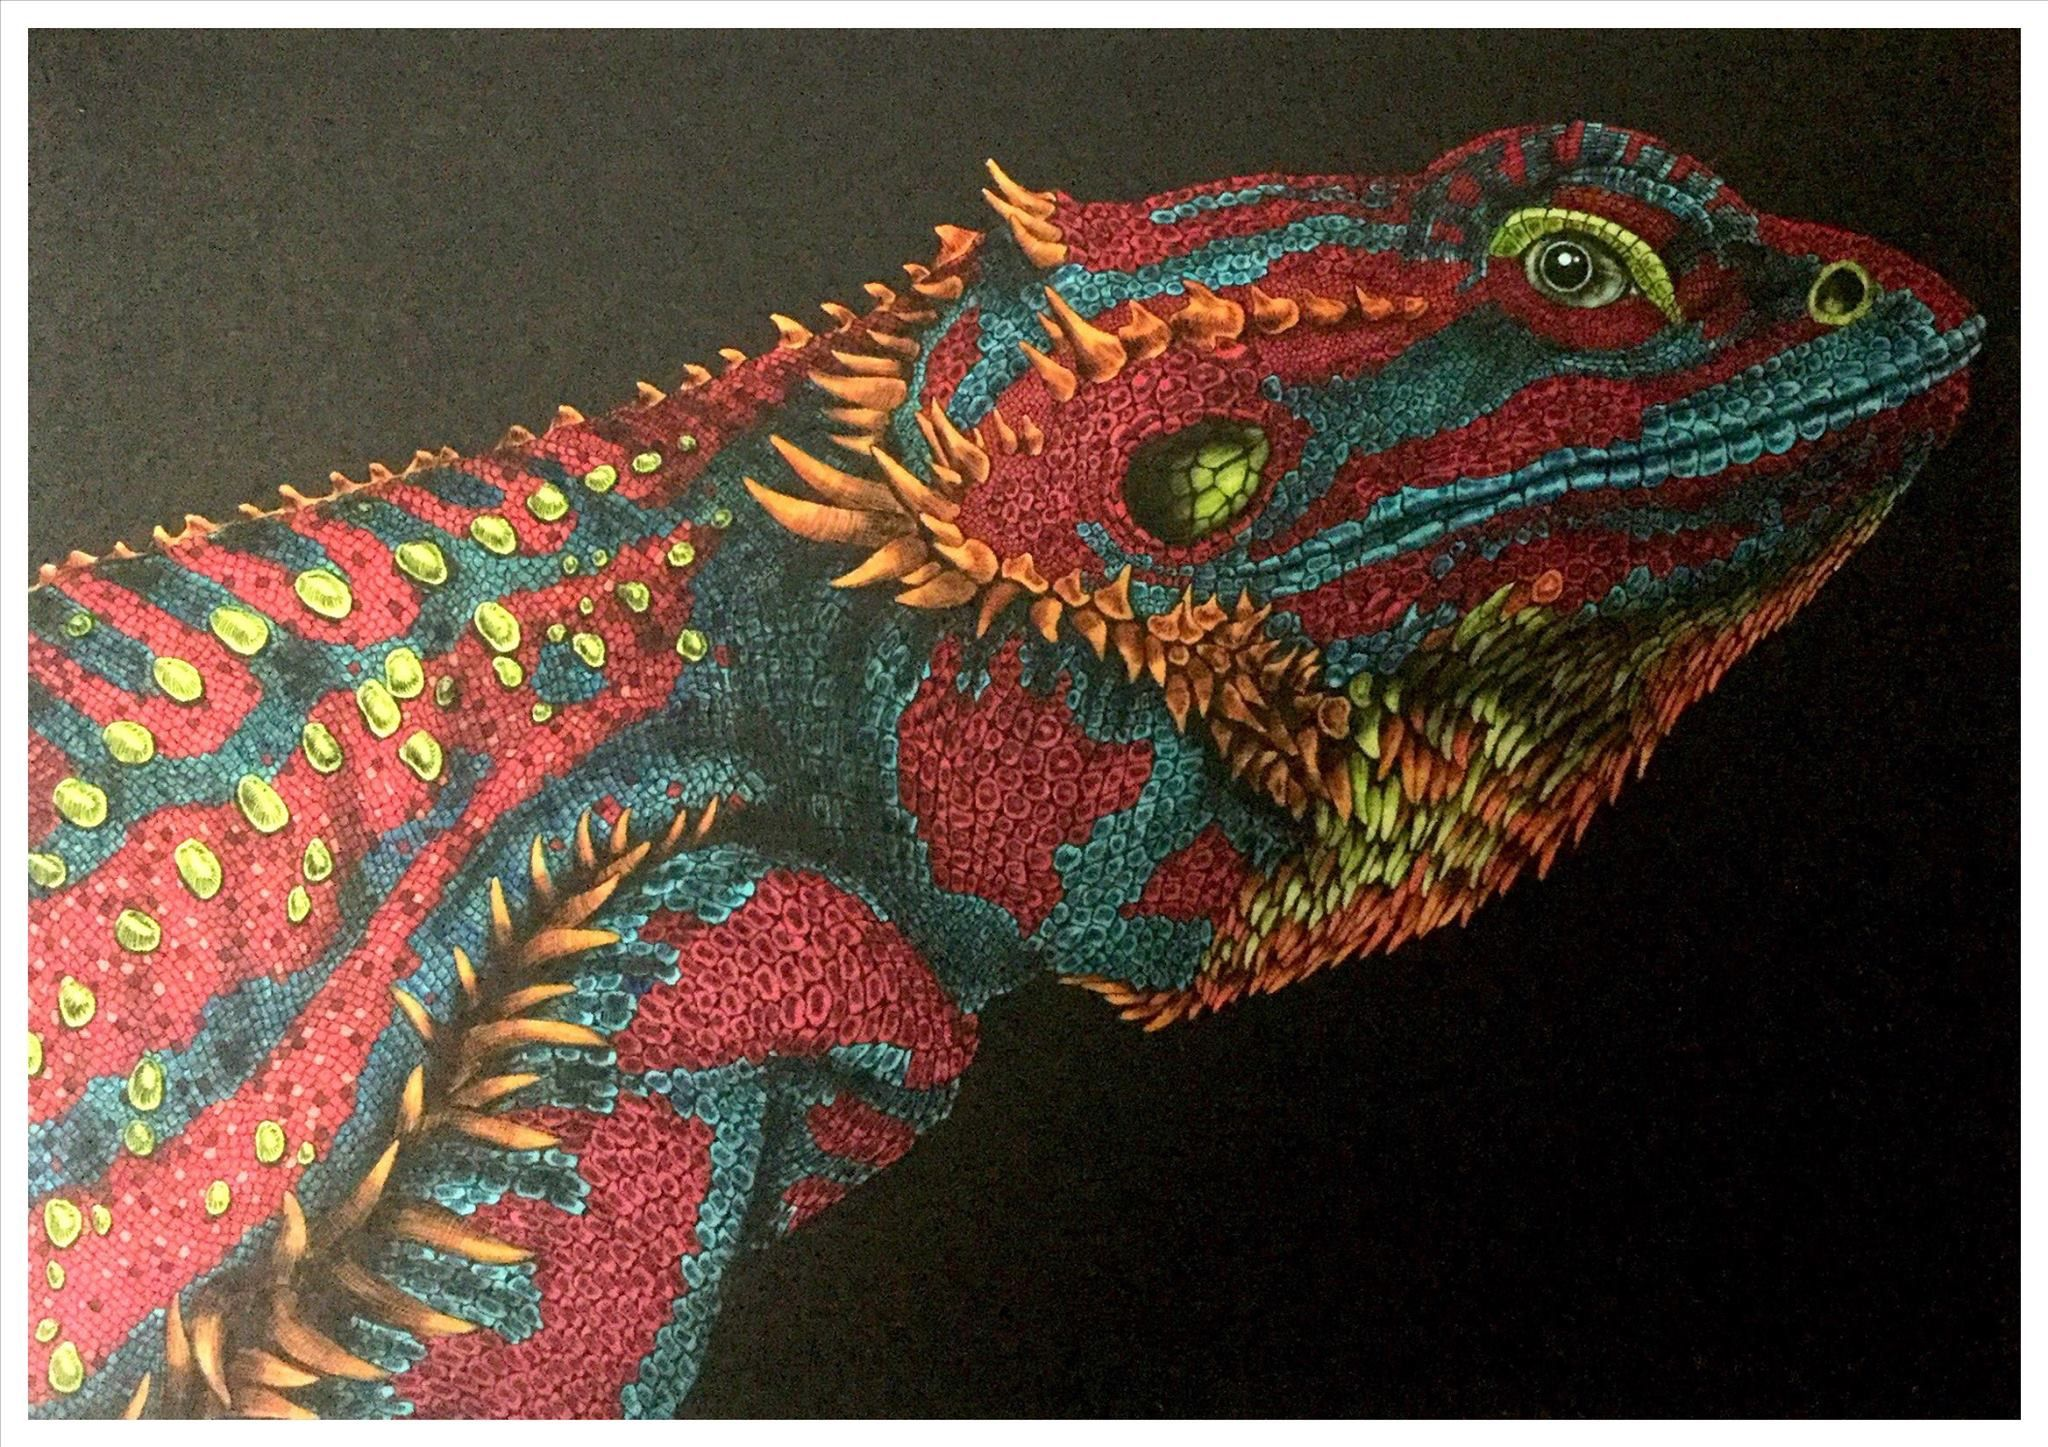 Bearded Dragon by Benji Jager | Intricate Ink: Animals In Detail ...